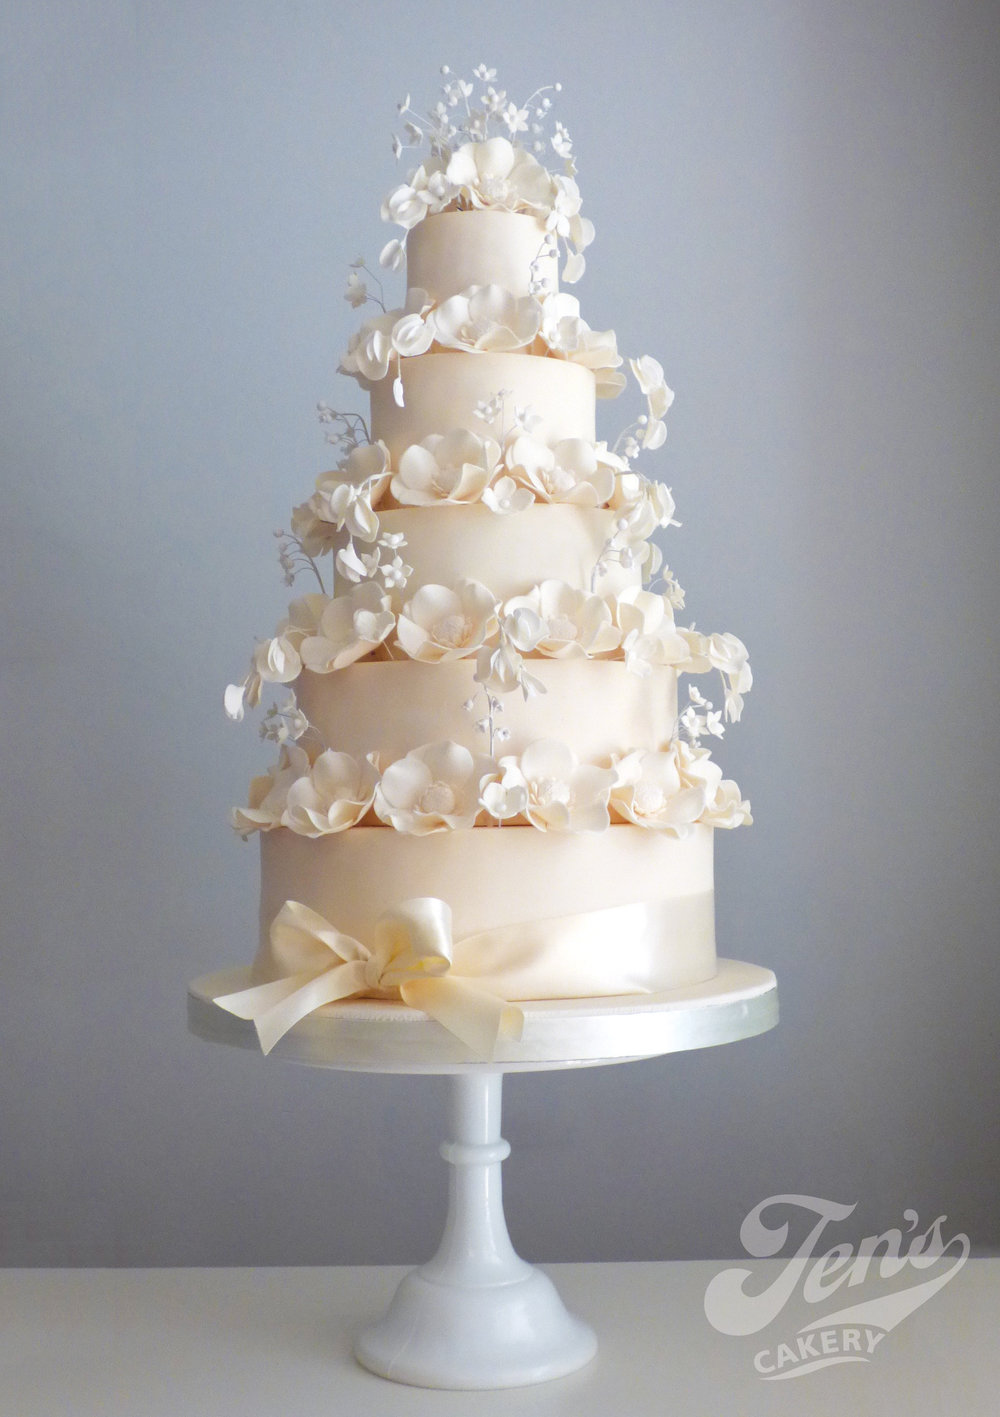 Beautiful ivory wedding cake with flowers giving just the right balance between modern and traditional.